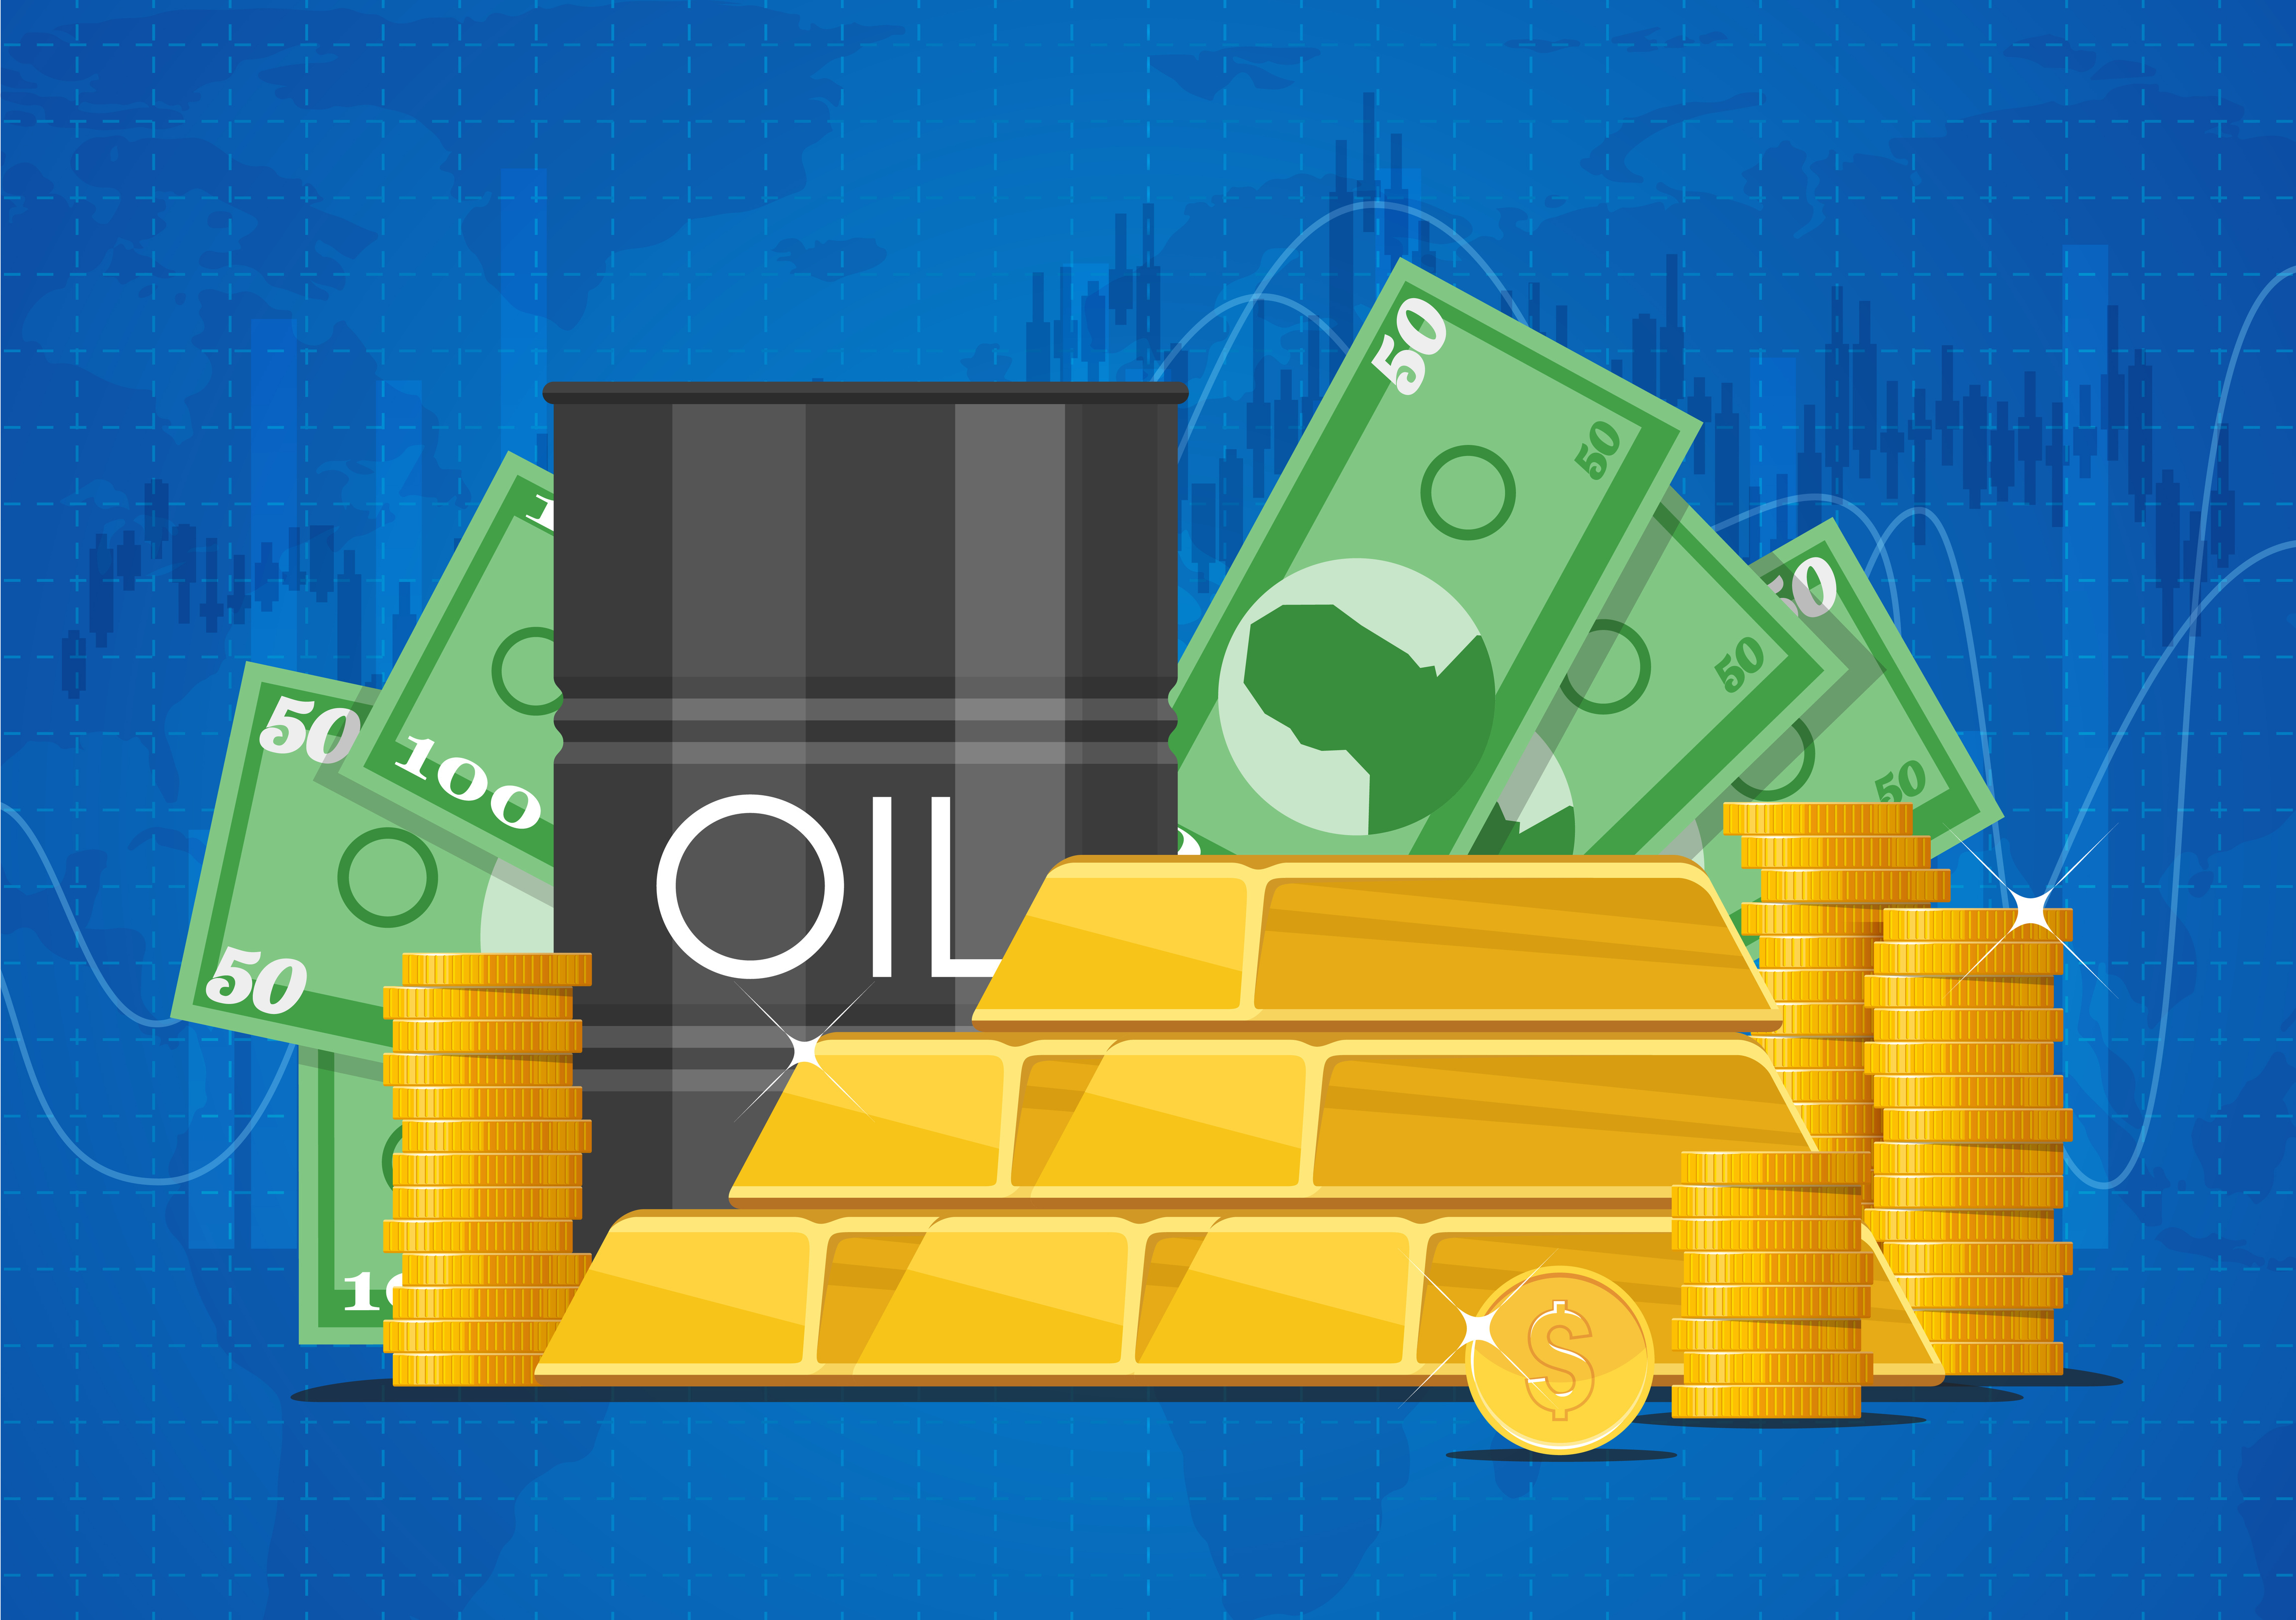 Oil rises, gold slips after rally